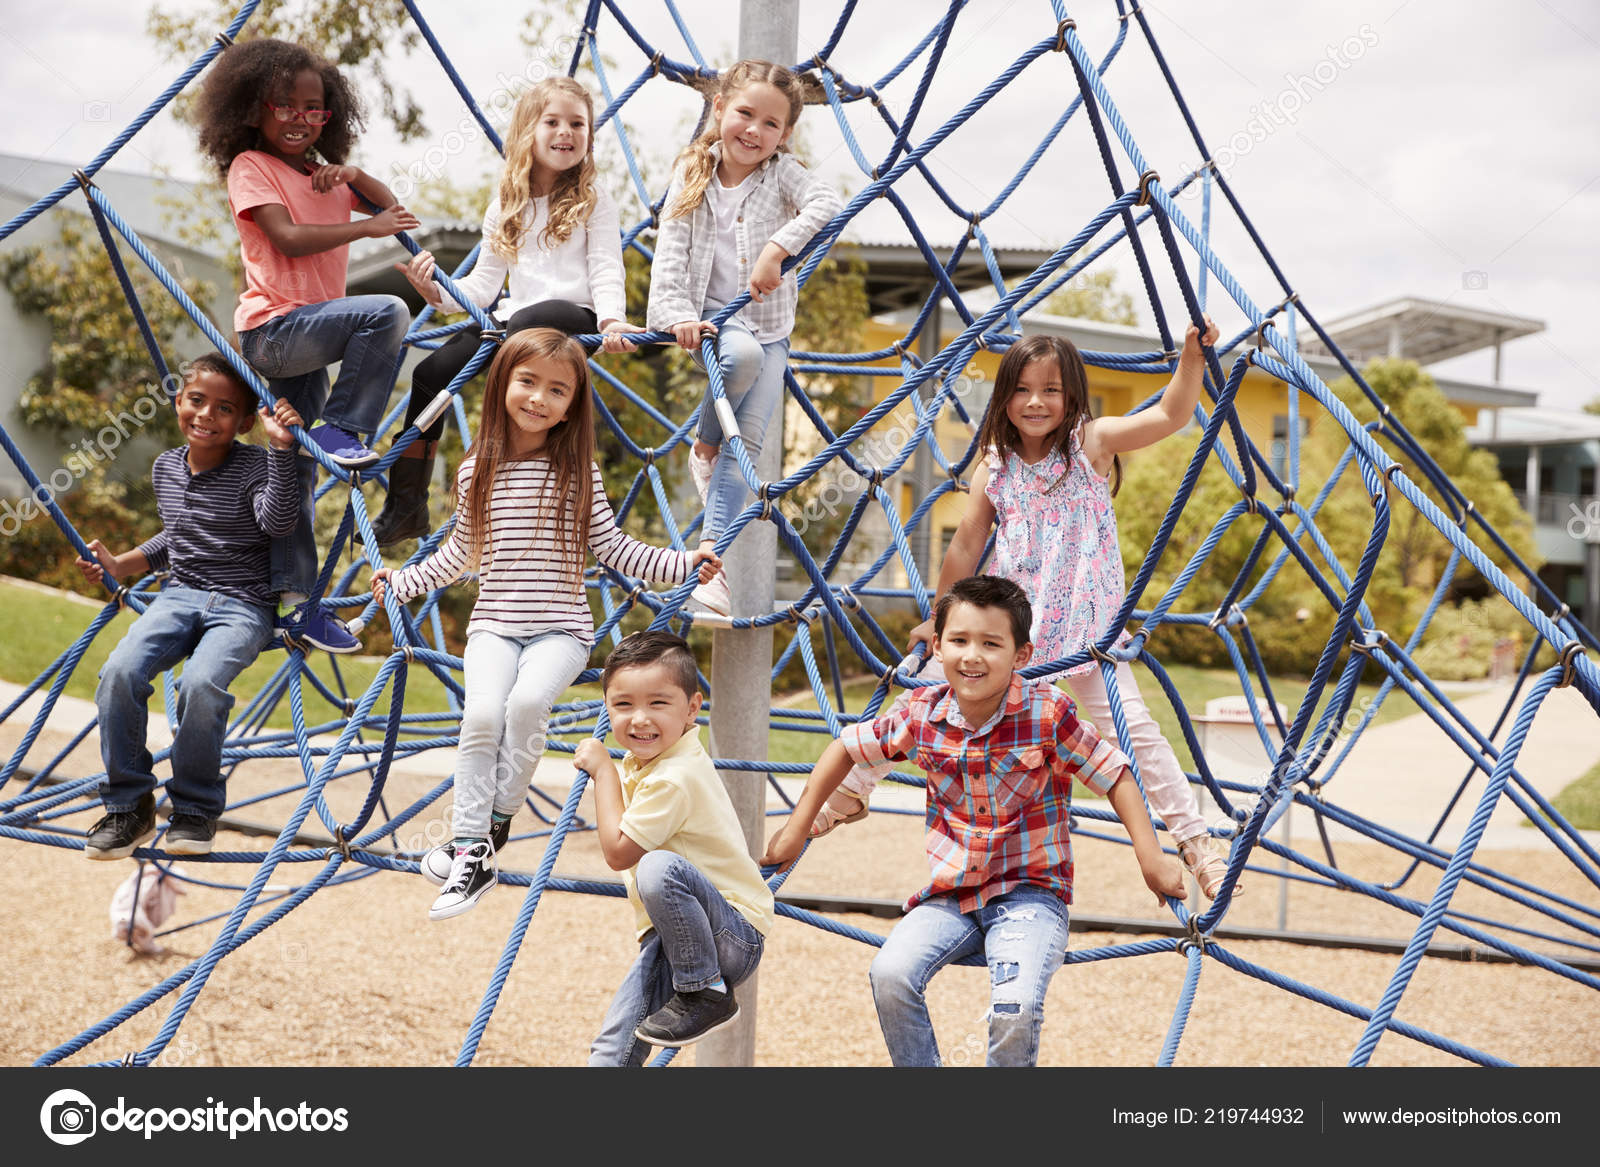 Image result for image kids in playground at school